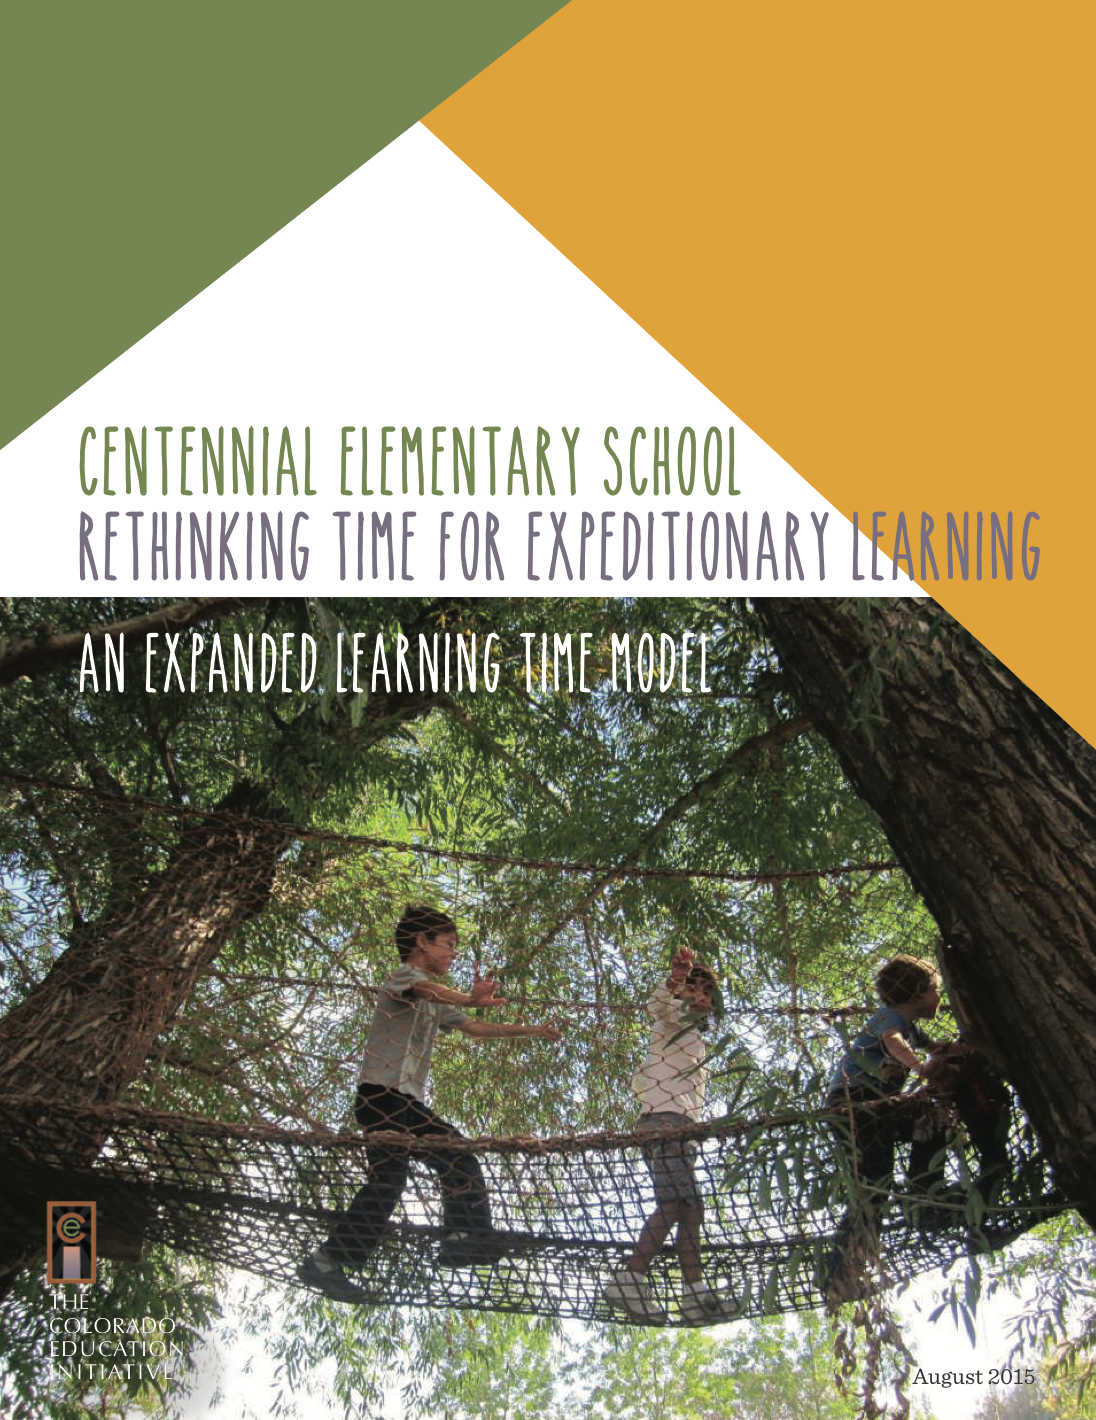 Centennial Elementary School: rethinking time for expeditionary learning, august 2015